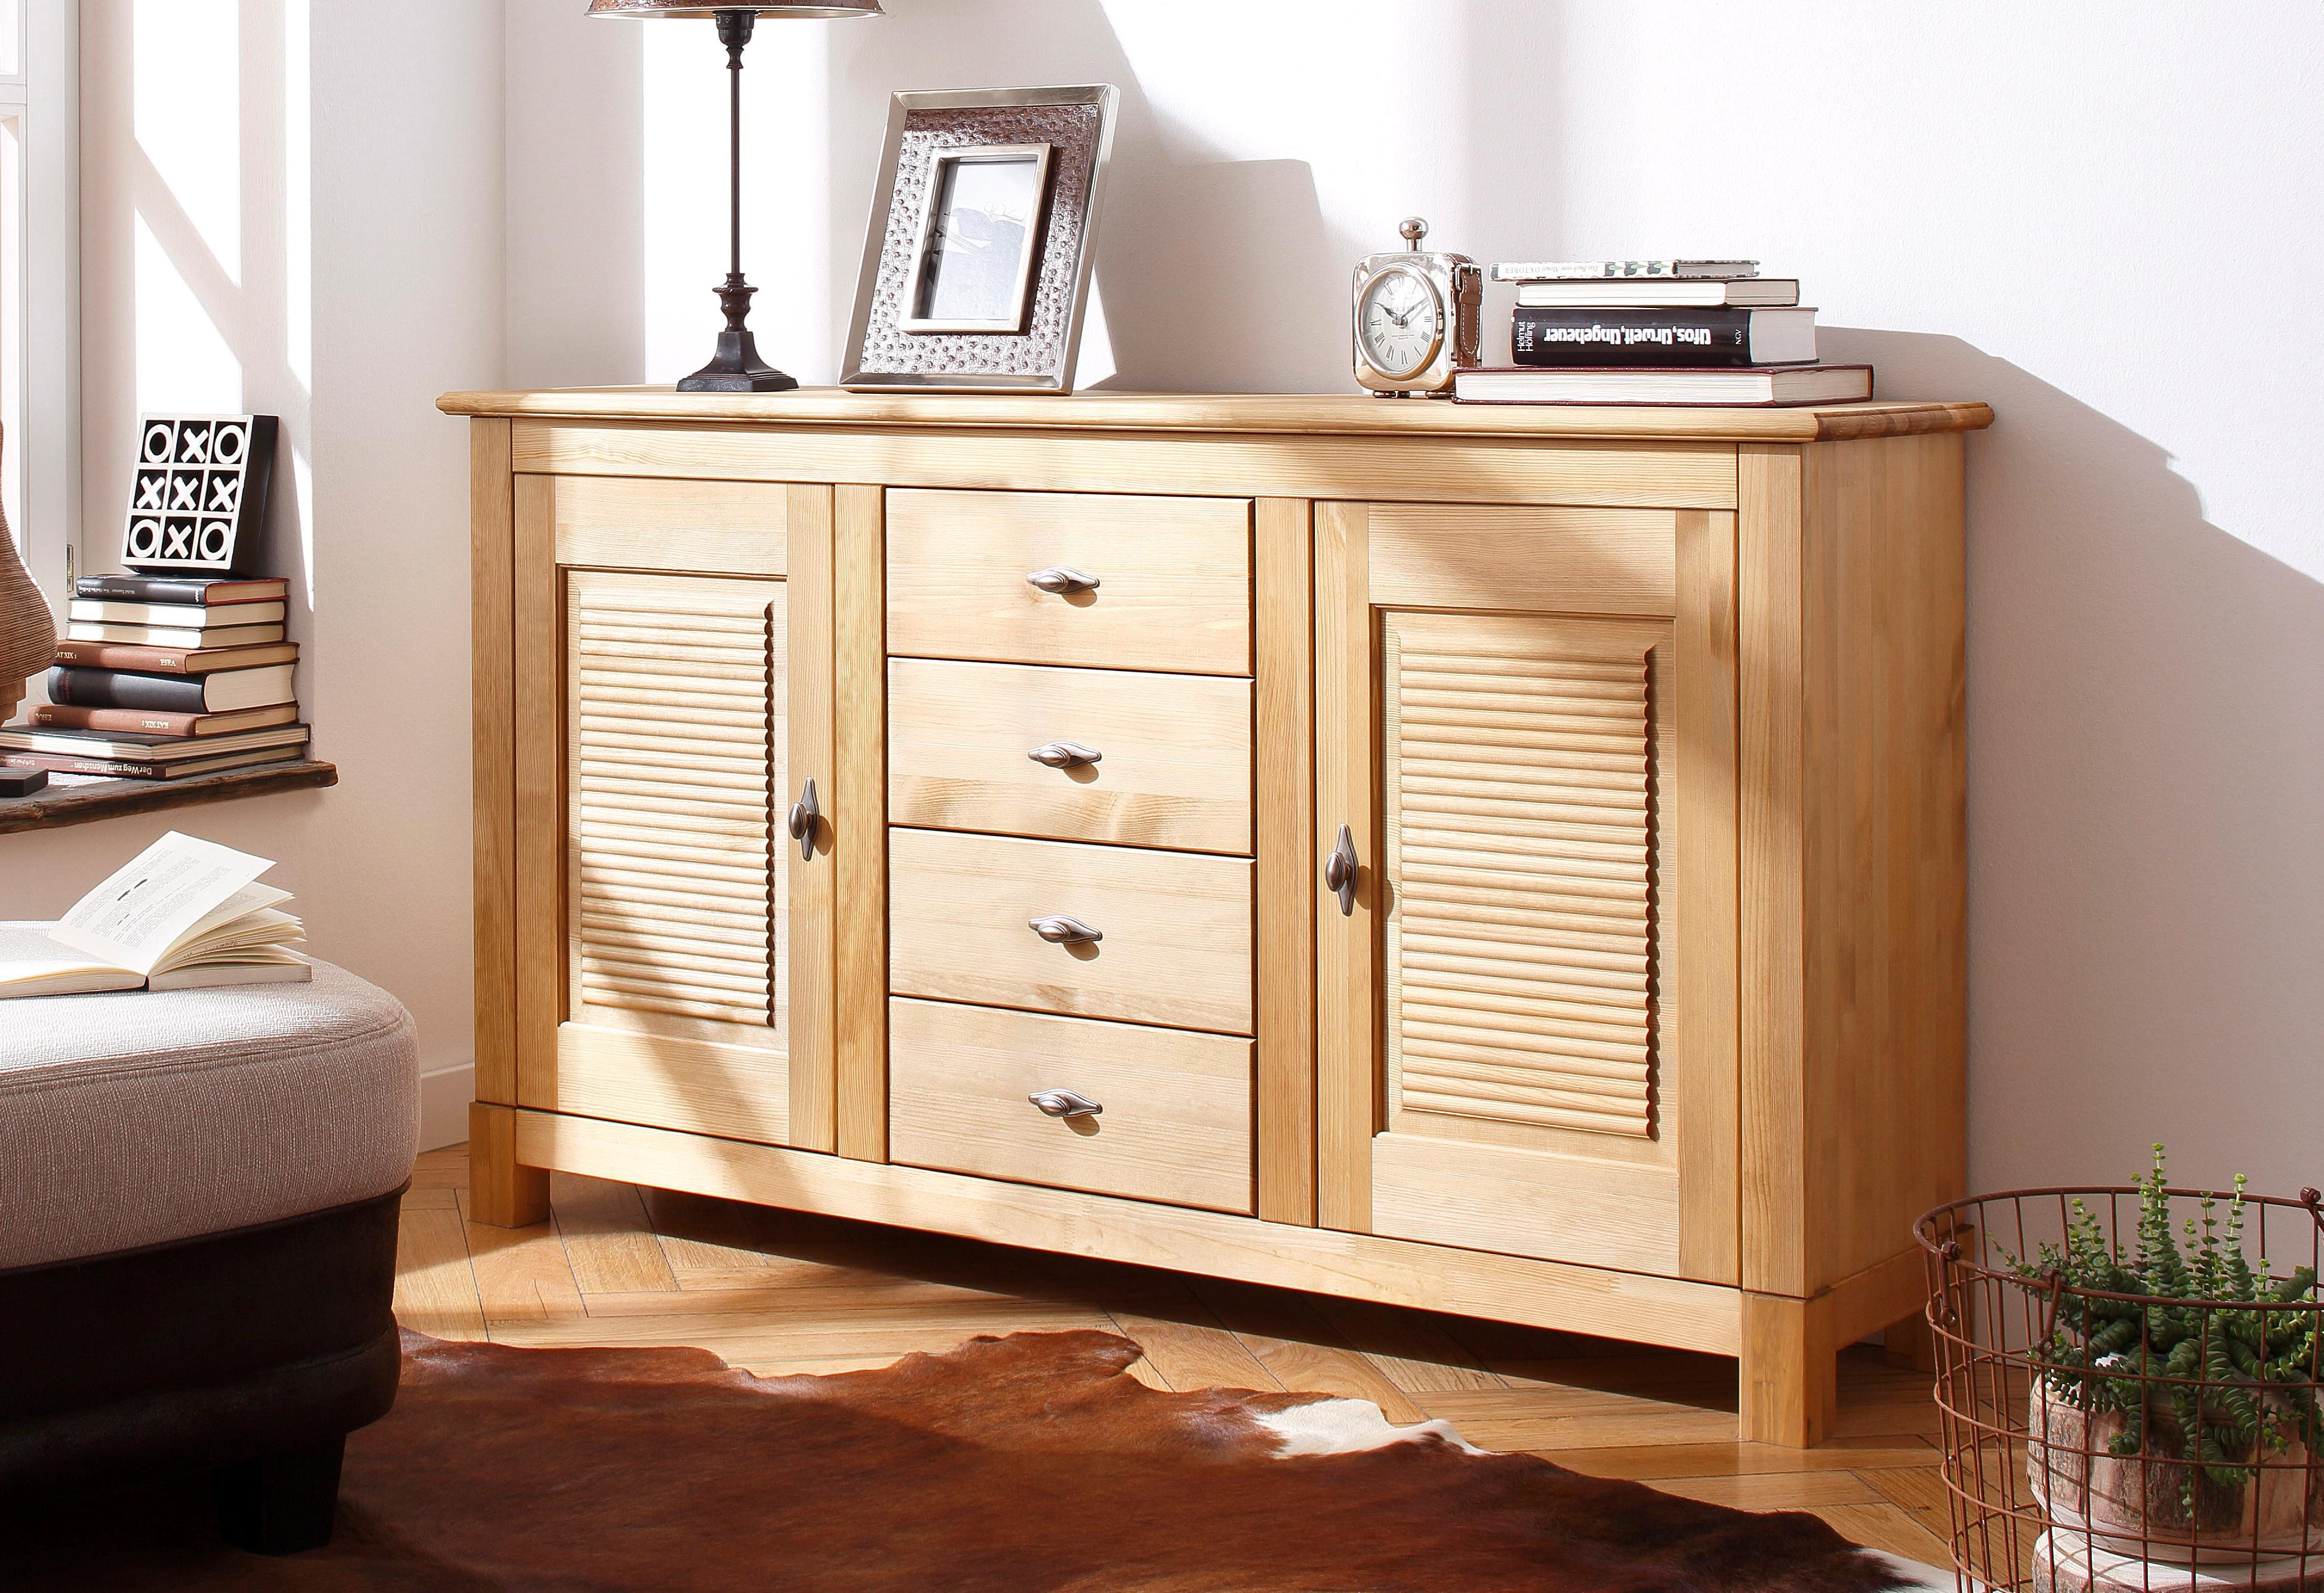 31 sparen sideboard rauna von home affaire ab 249 99 cherry m bel otto. Black Bedroom Furniture Sets. Home Design Ideas